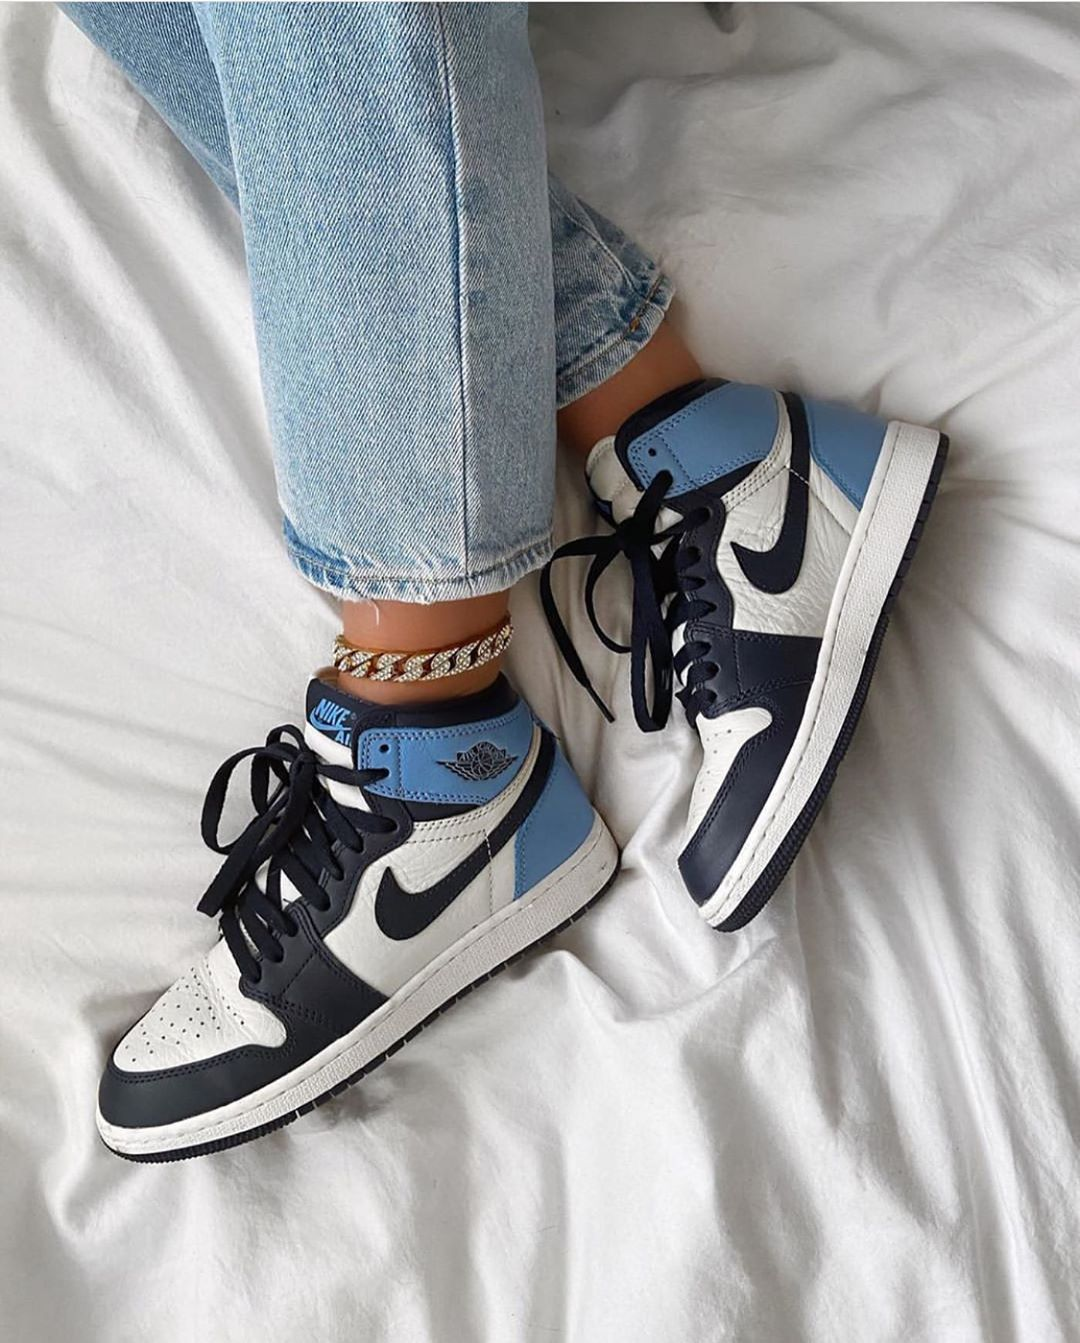 Jordan 1 Retro High Obsidian UNC in 2020 | Nike schoenen ...